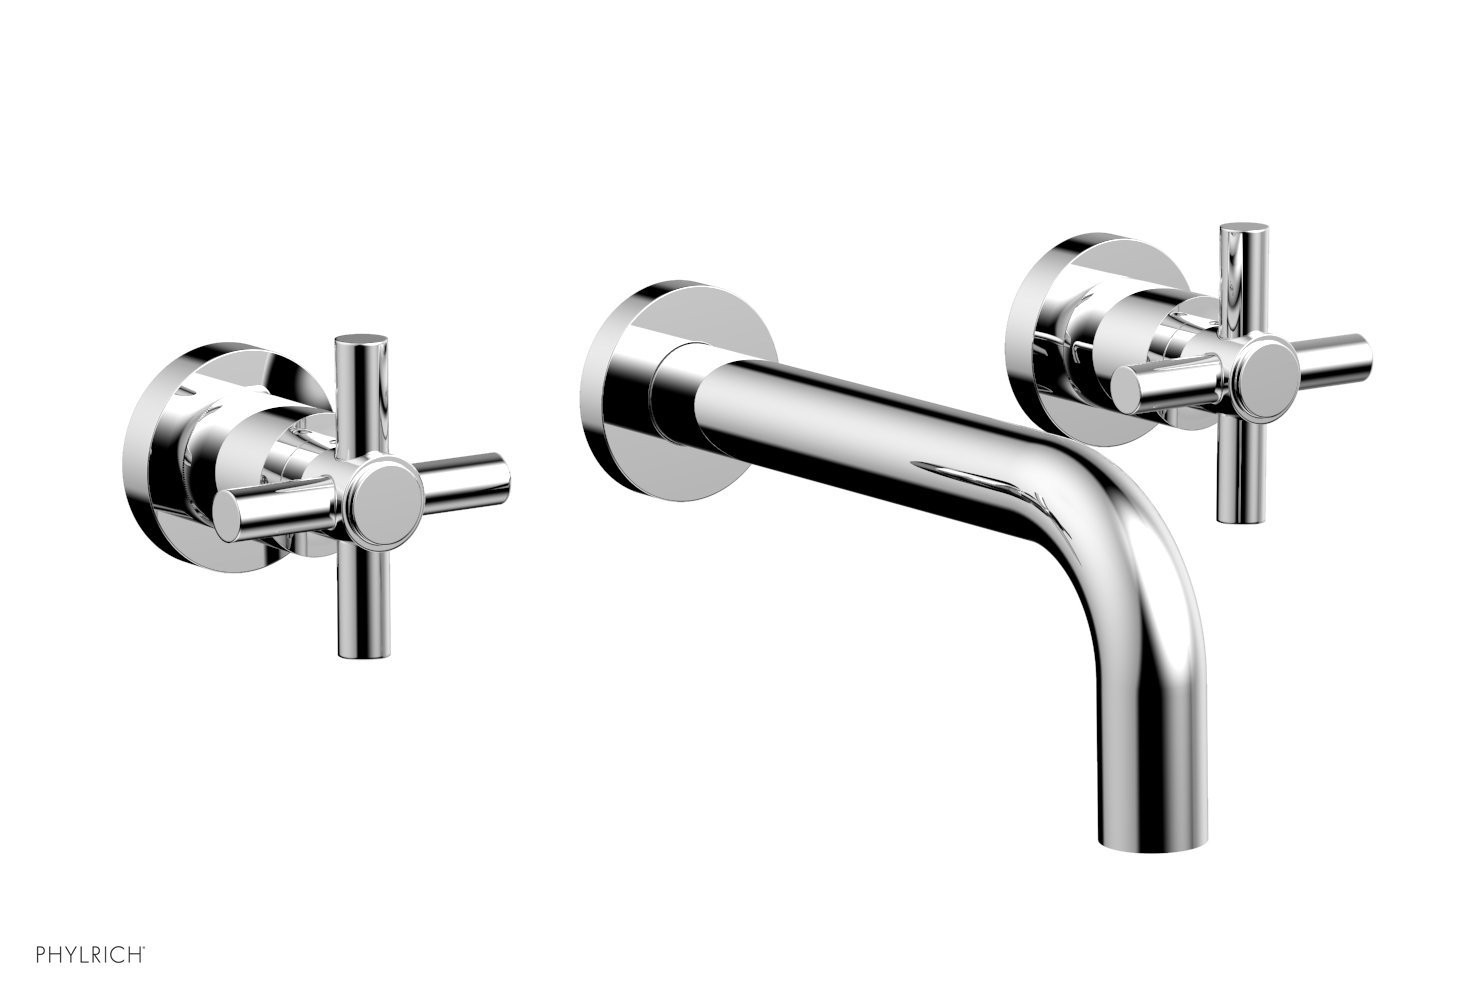 PHYLRICH D1134 BASIC THREE HOLES WIDESPREAD WALL TUB SET WITH TUBULAR CROSS HANDLES